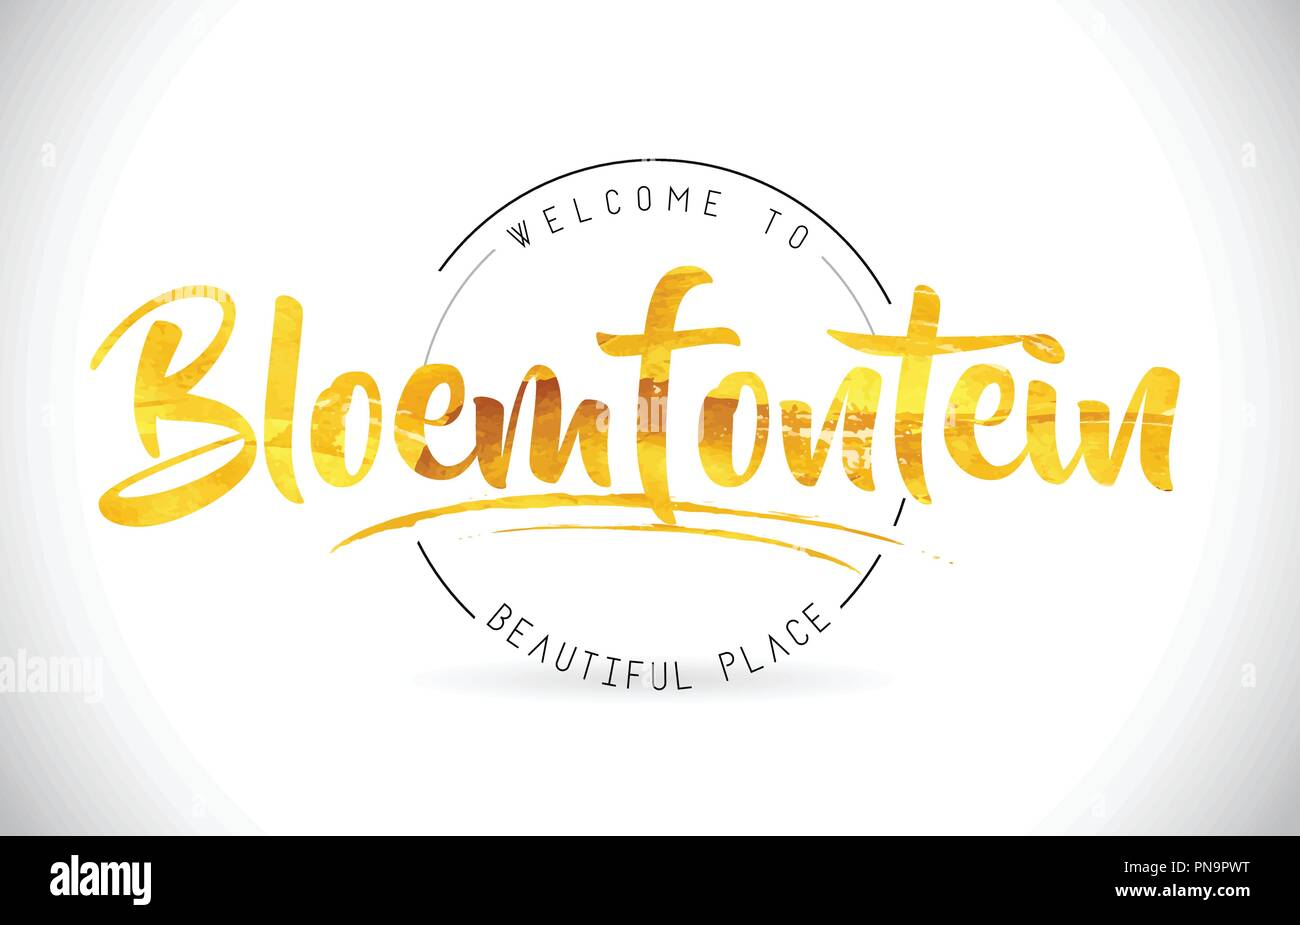 Bloemfontein Welcome To Word Text with Handwritten Font and Golden Texture Design Illustration Vector. - Stock Image